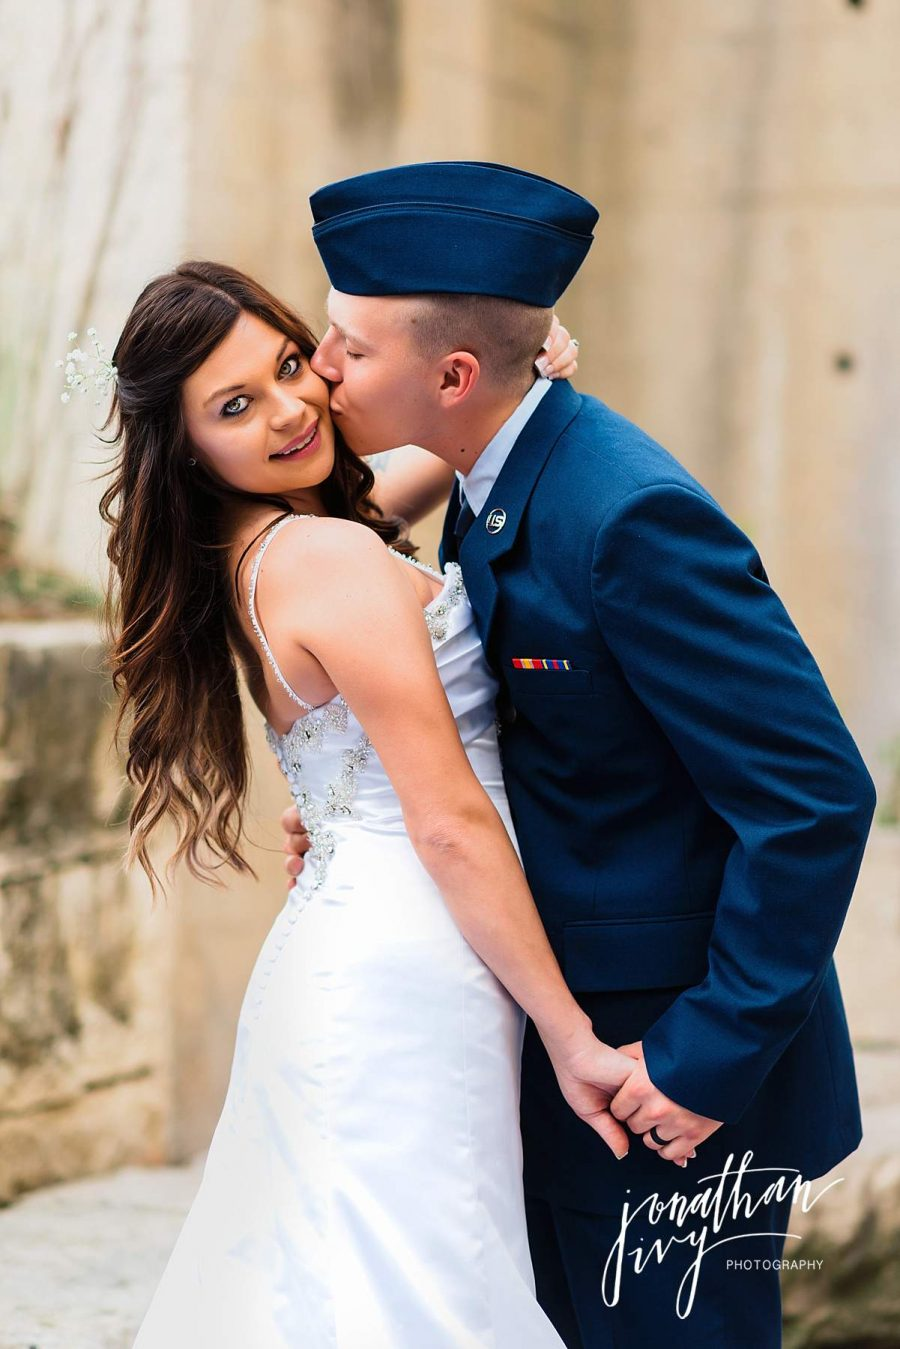 Military Elopement Wedding Photographer